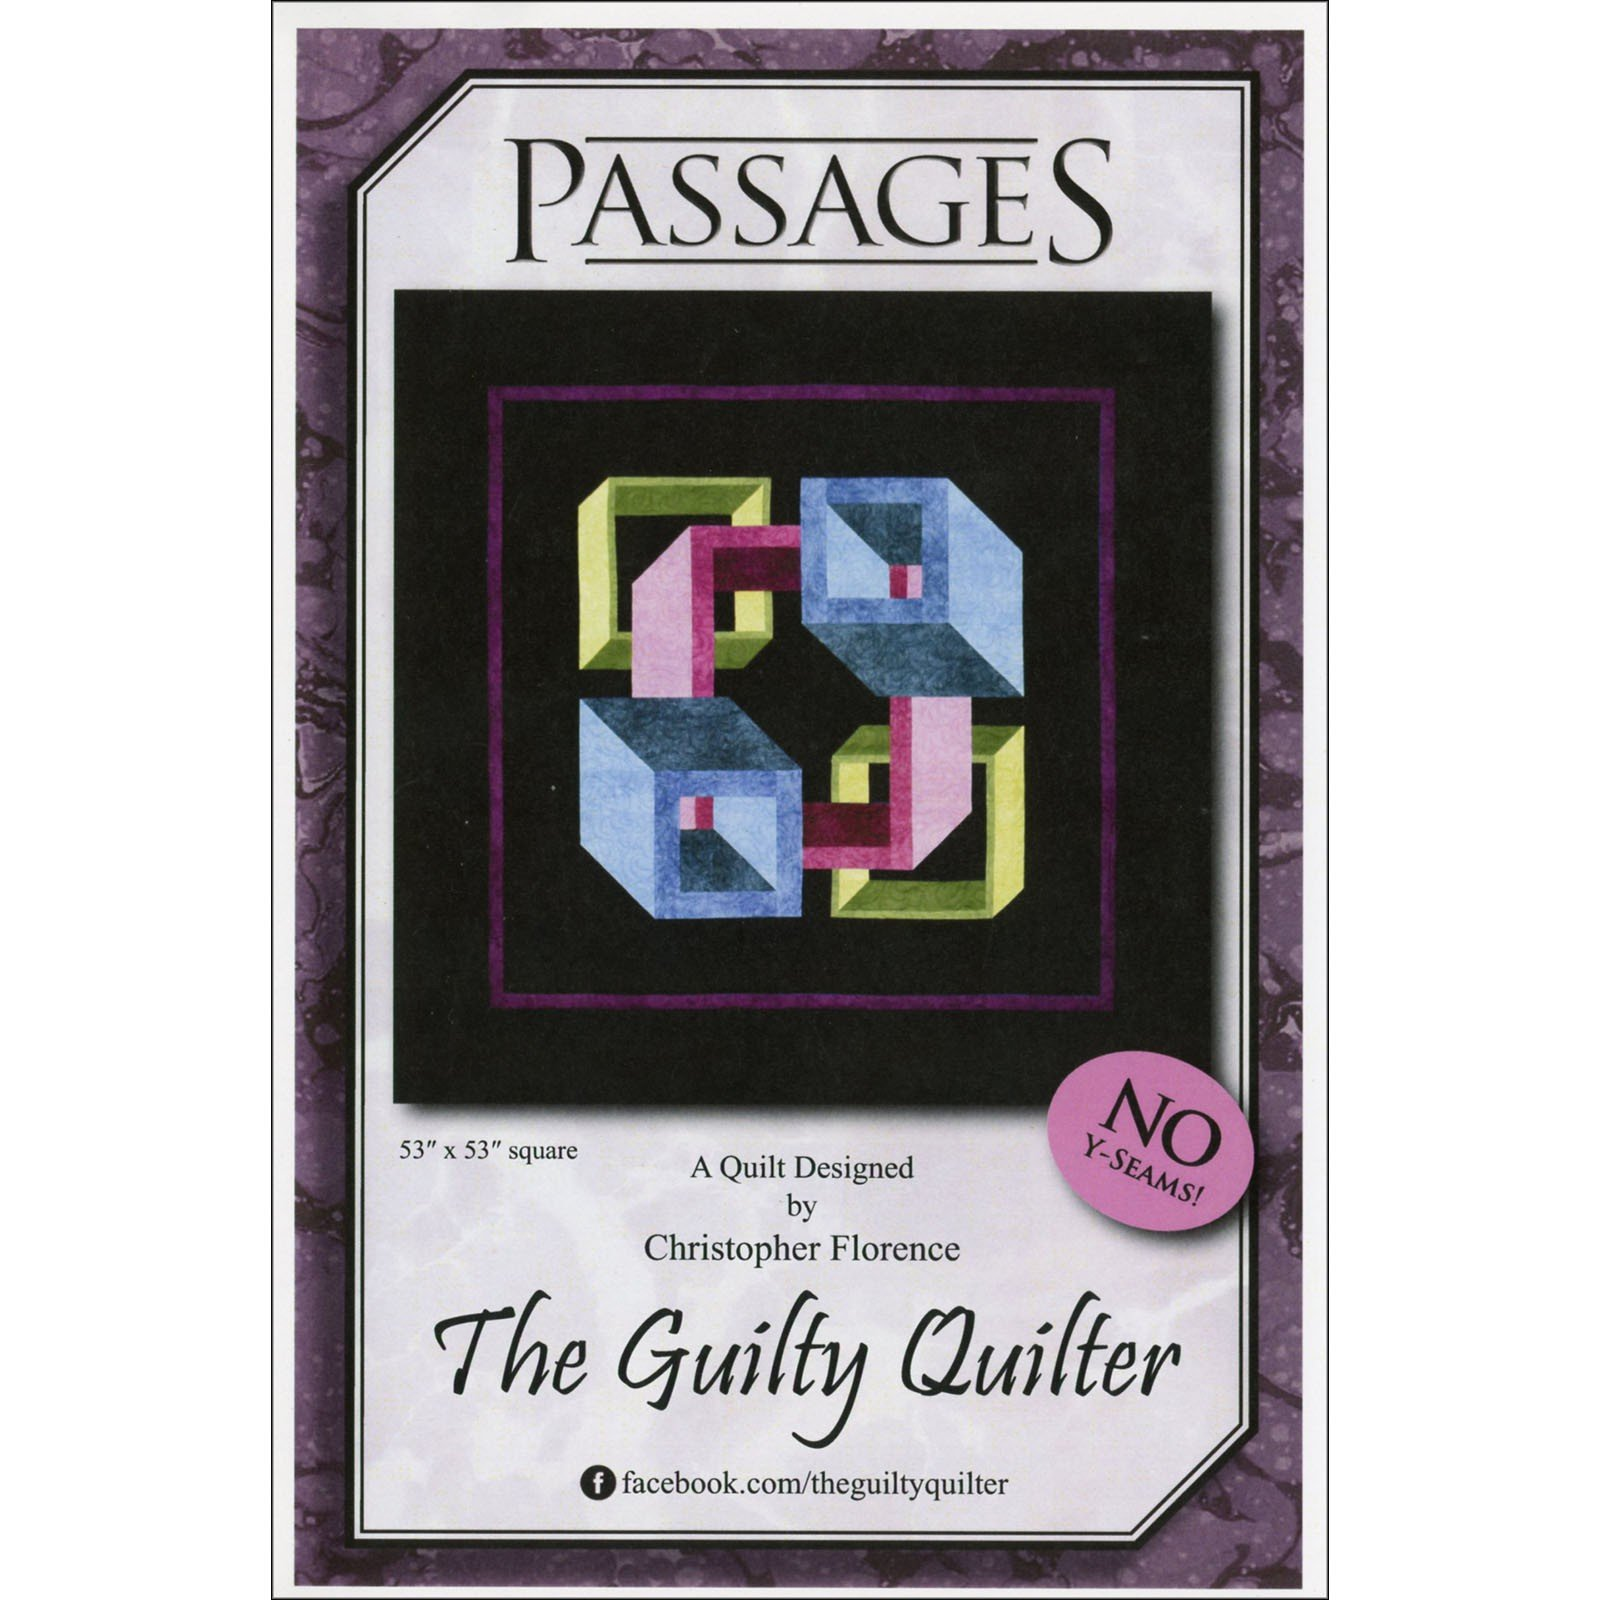 Passages by Christopher Florence - GQU04